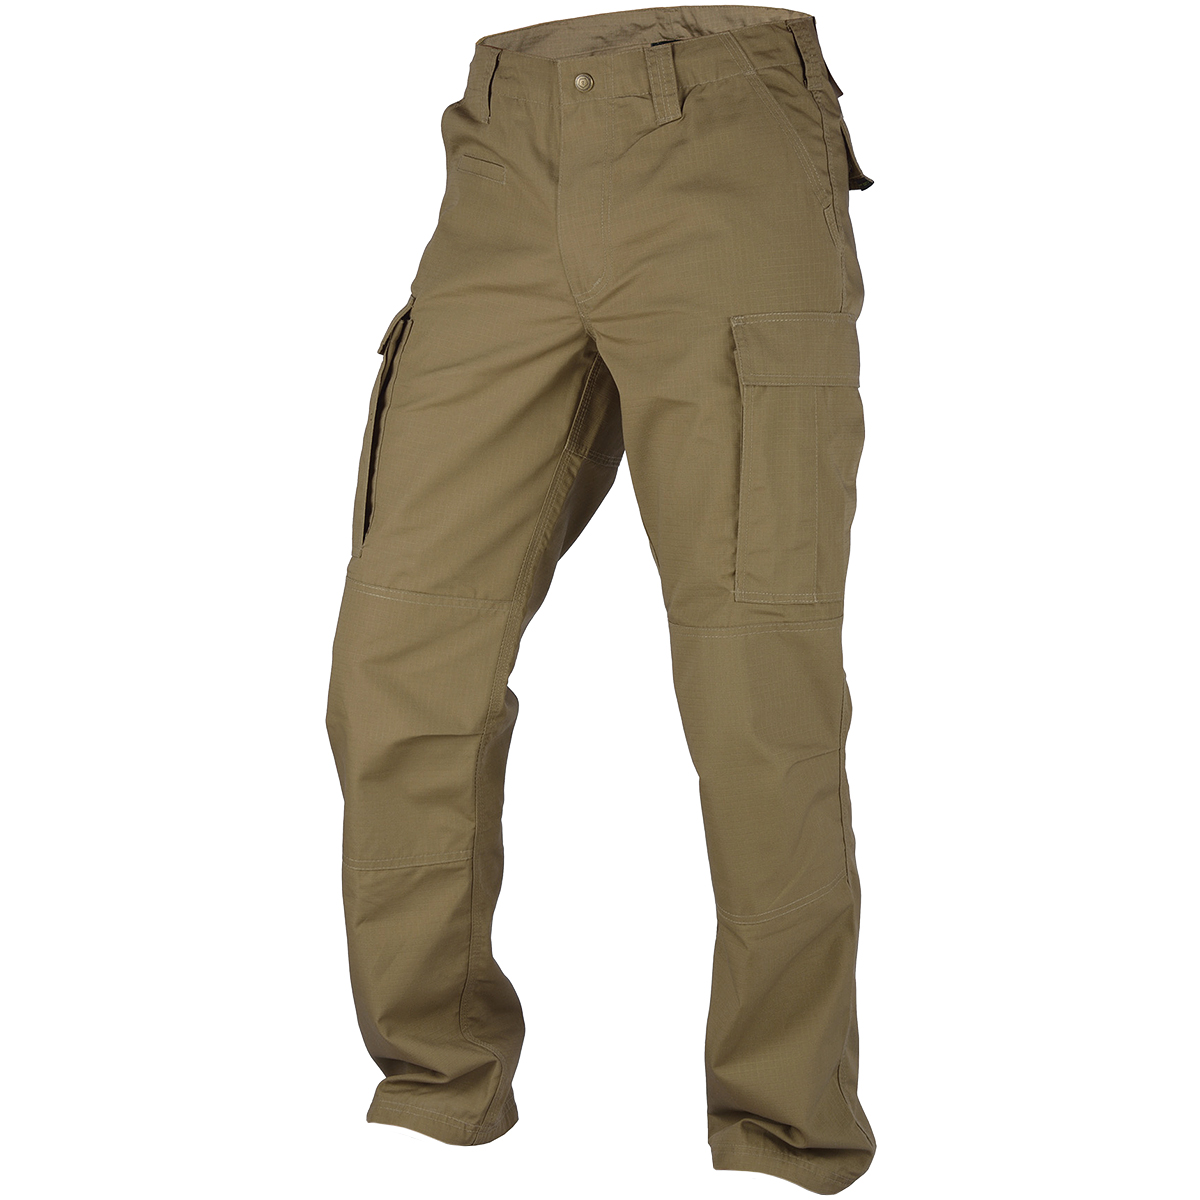 trousers - Usually only used for dressier clothes, such as suit pants or finer pants often worn with a sports jacket, blazer or a dressier shirt. Usually reserved for men's clothing, with the possible exception of women's pants suits.